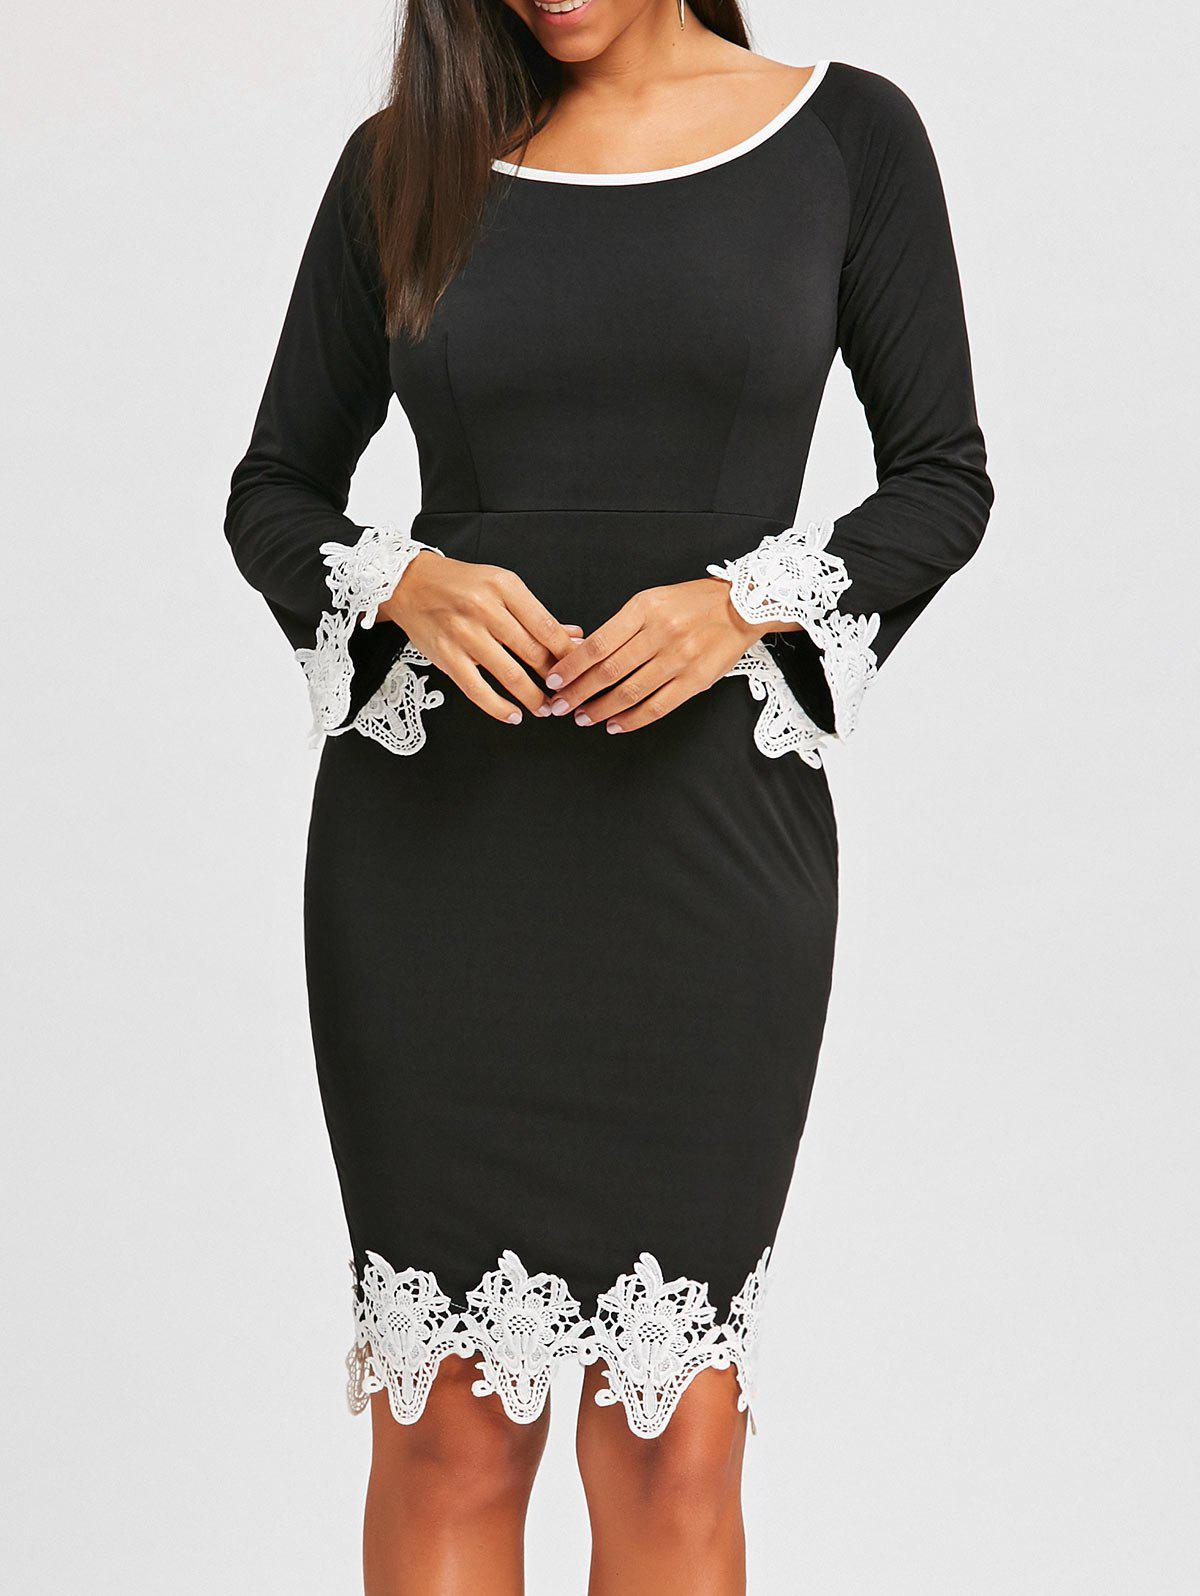 Lace Insert Long Sleeve Pencil Dress long sleeve lace insert mini dress